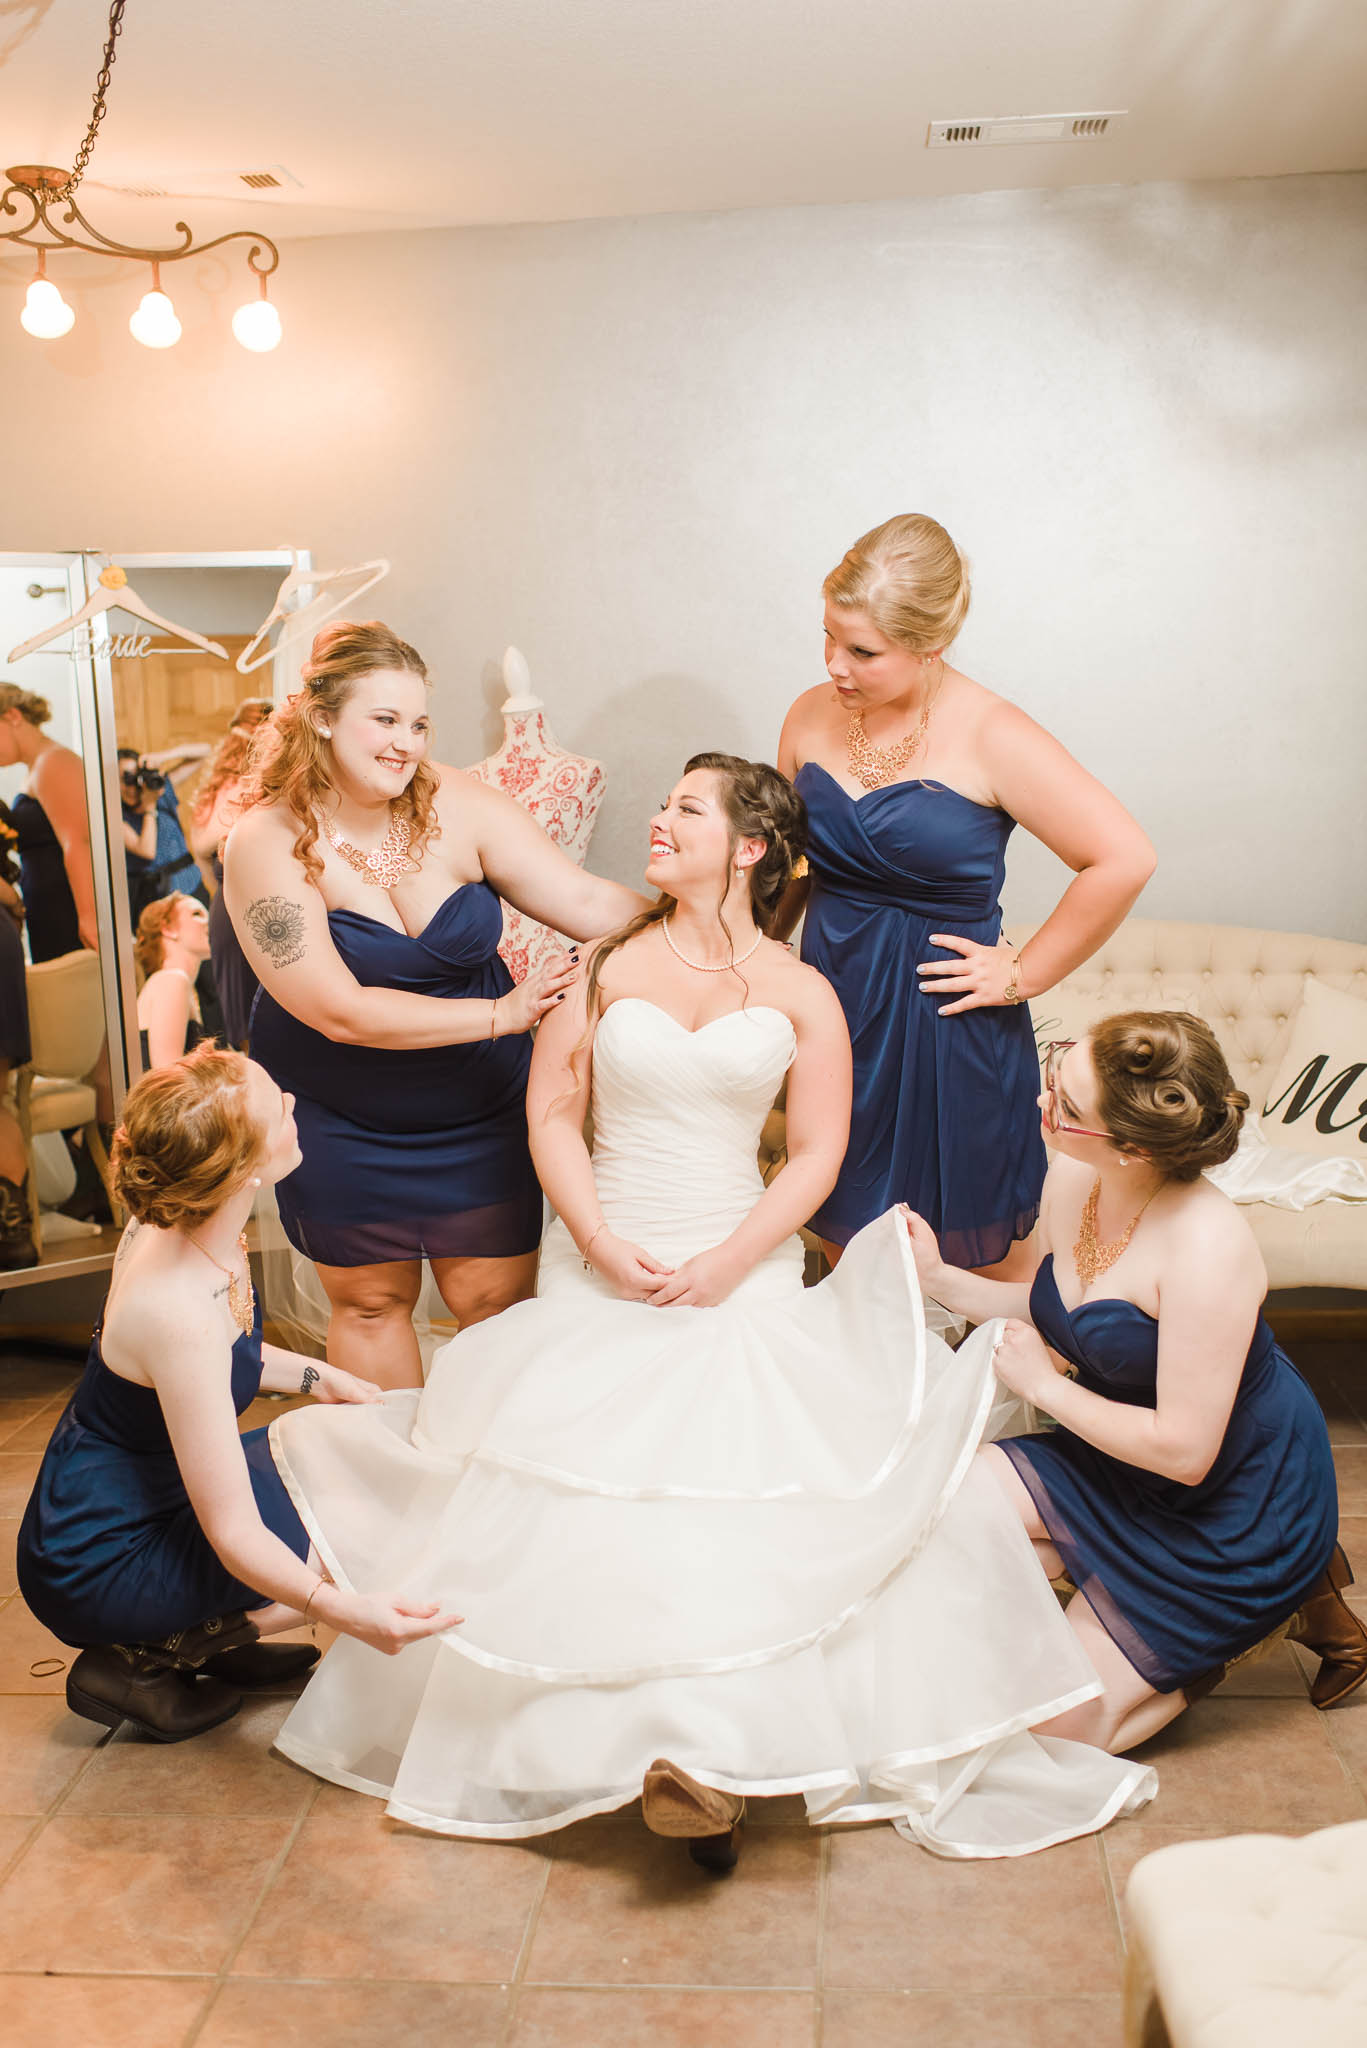 bridesmaids adjusting bride's dress on wedding day